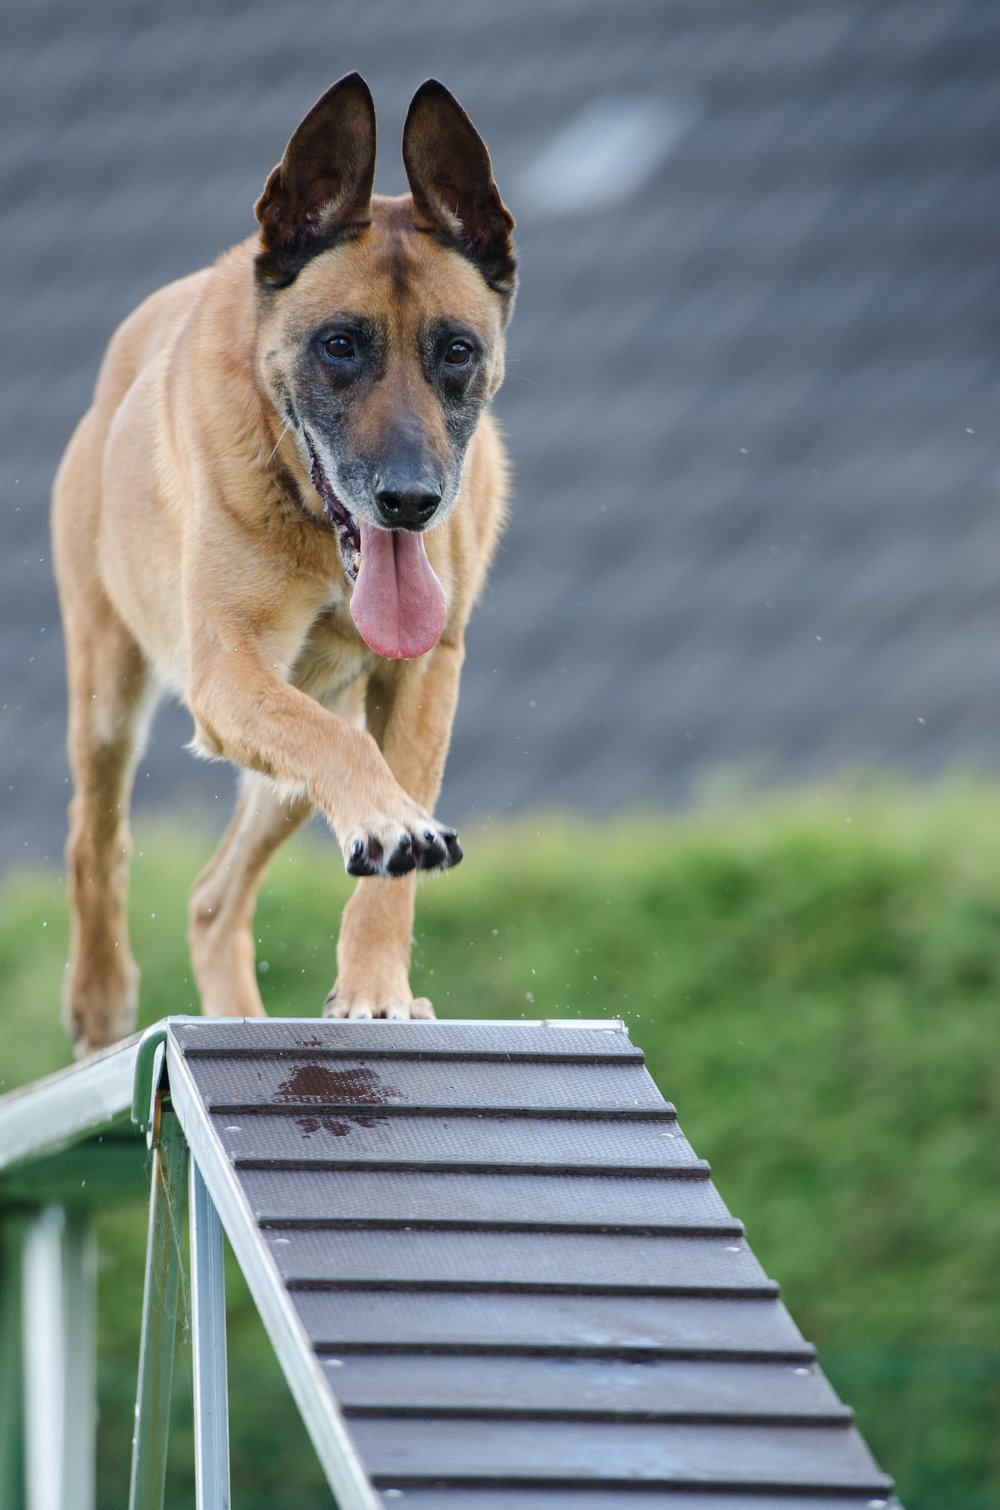 agility-animal-blur-260440.jpg